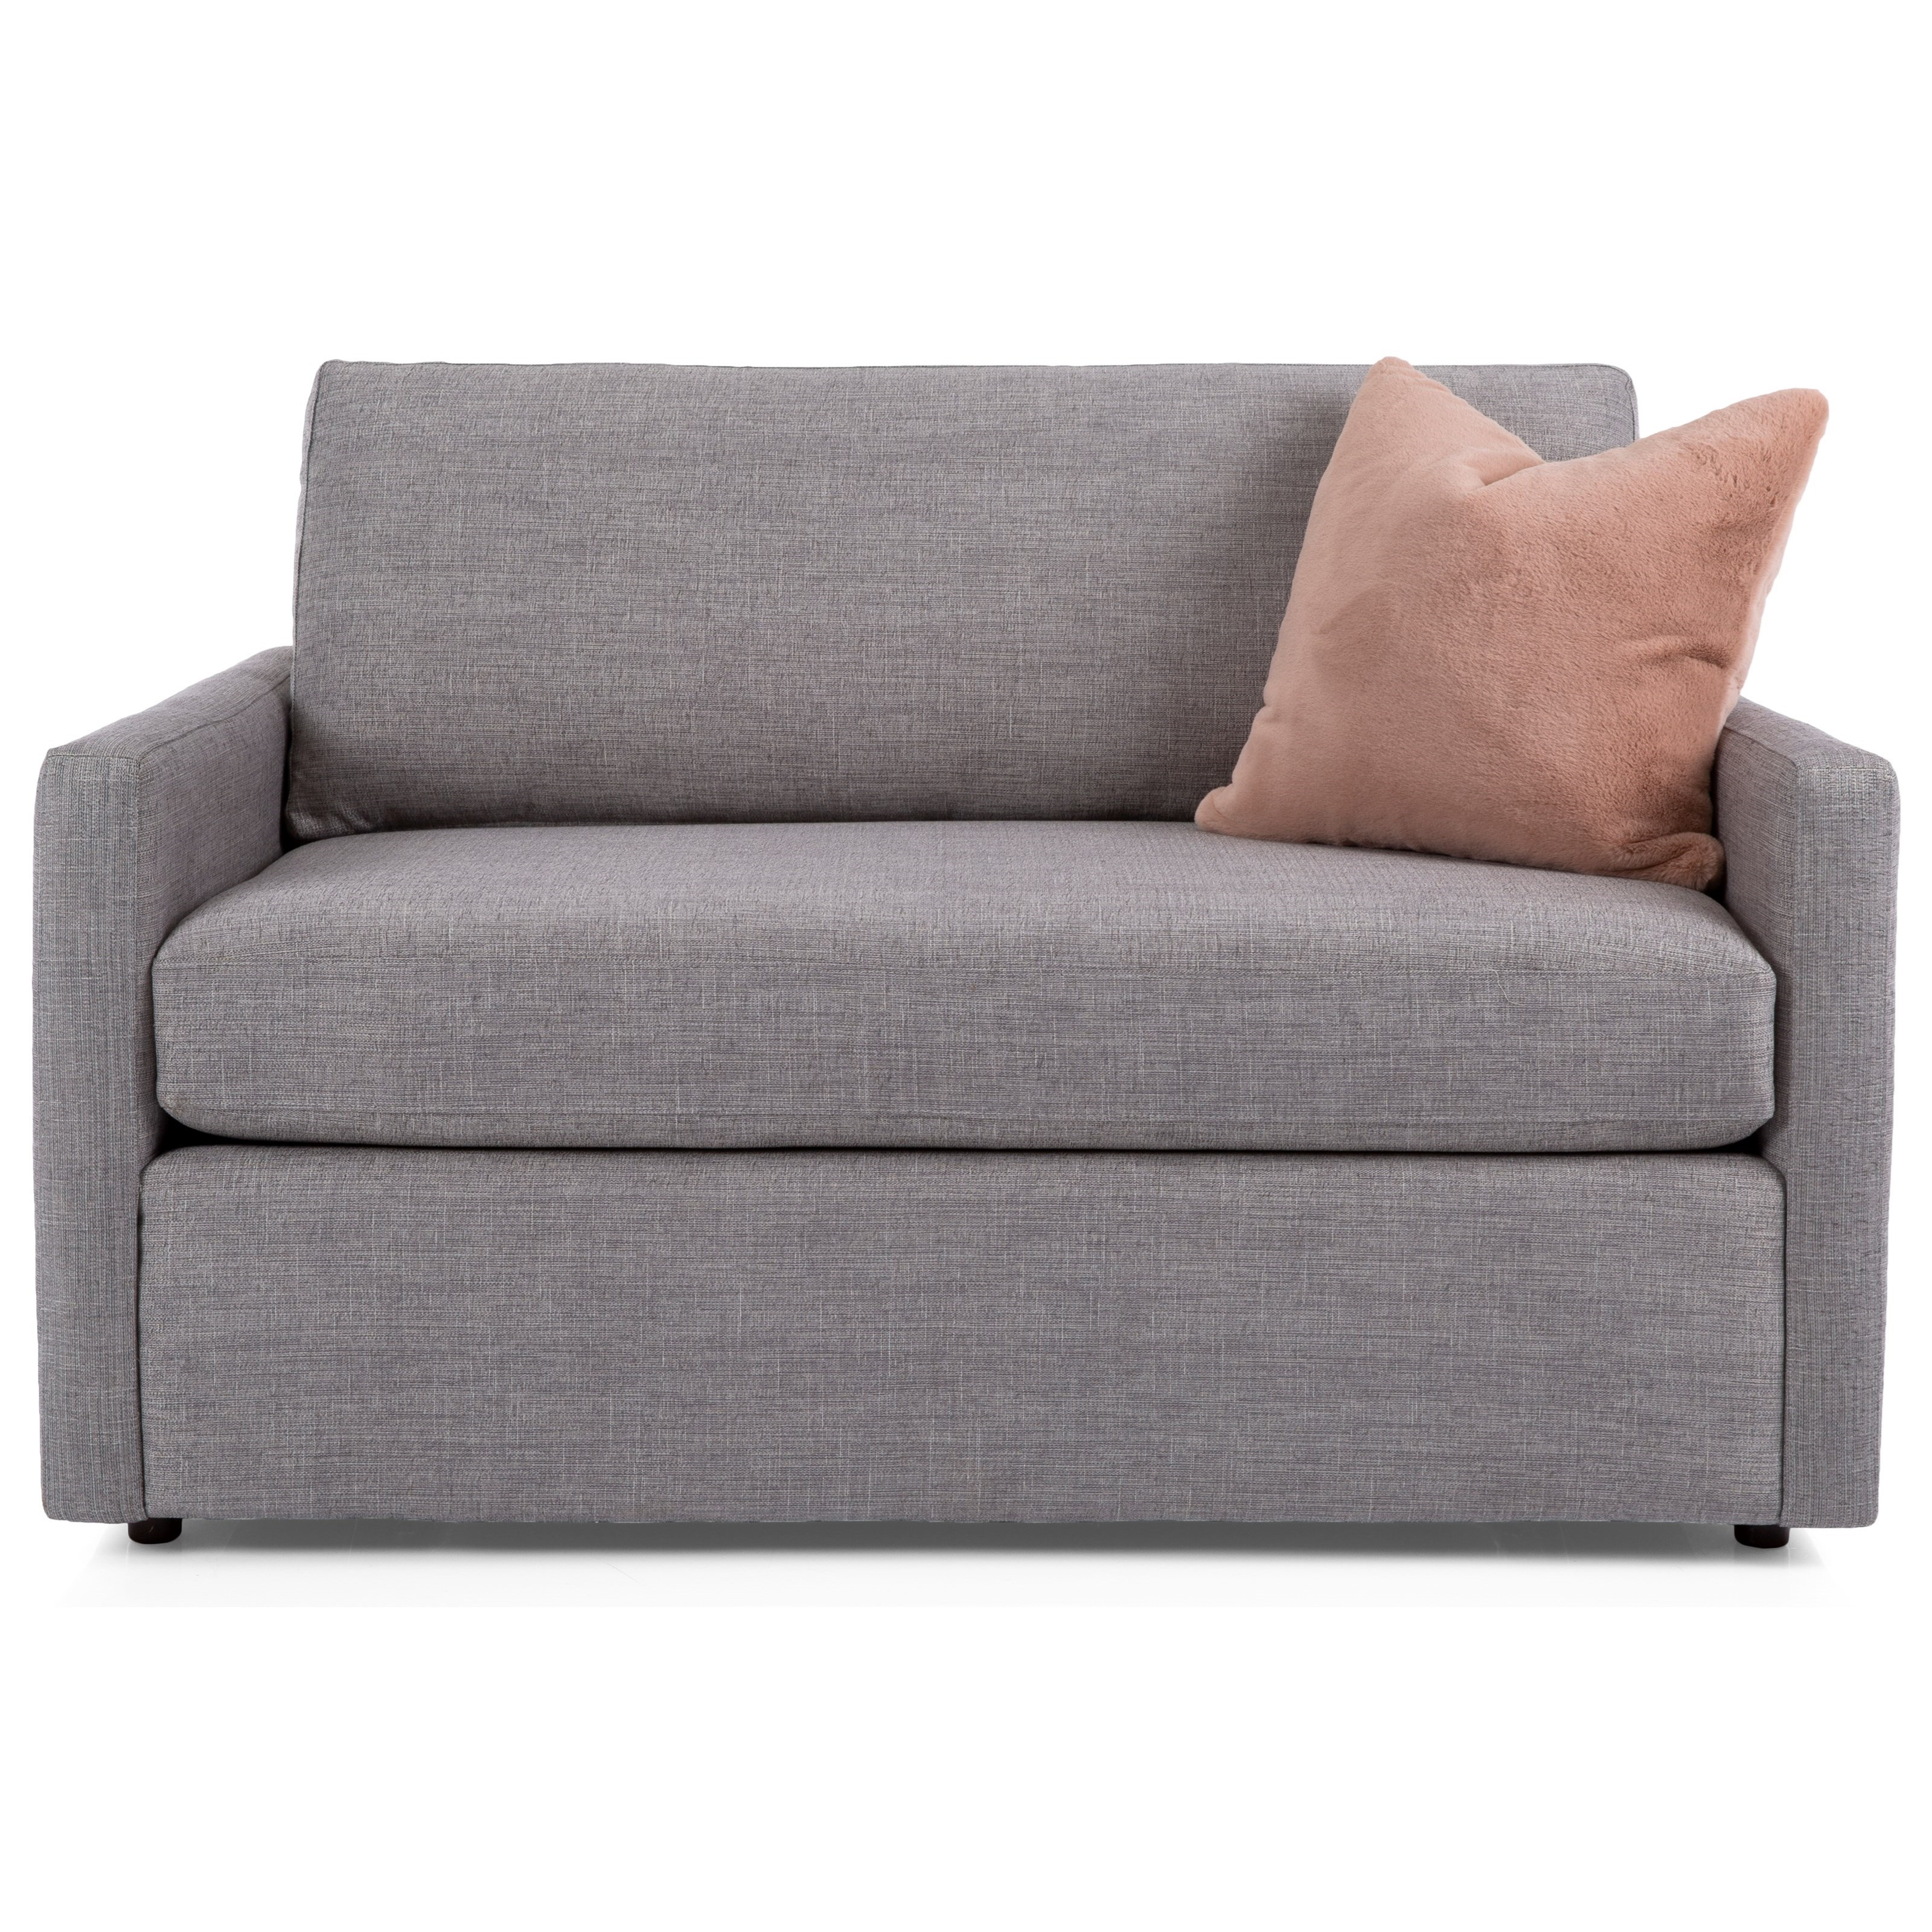 2068 Loveseat Twin Sleeper by Decor-Rest at Rooms for Less